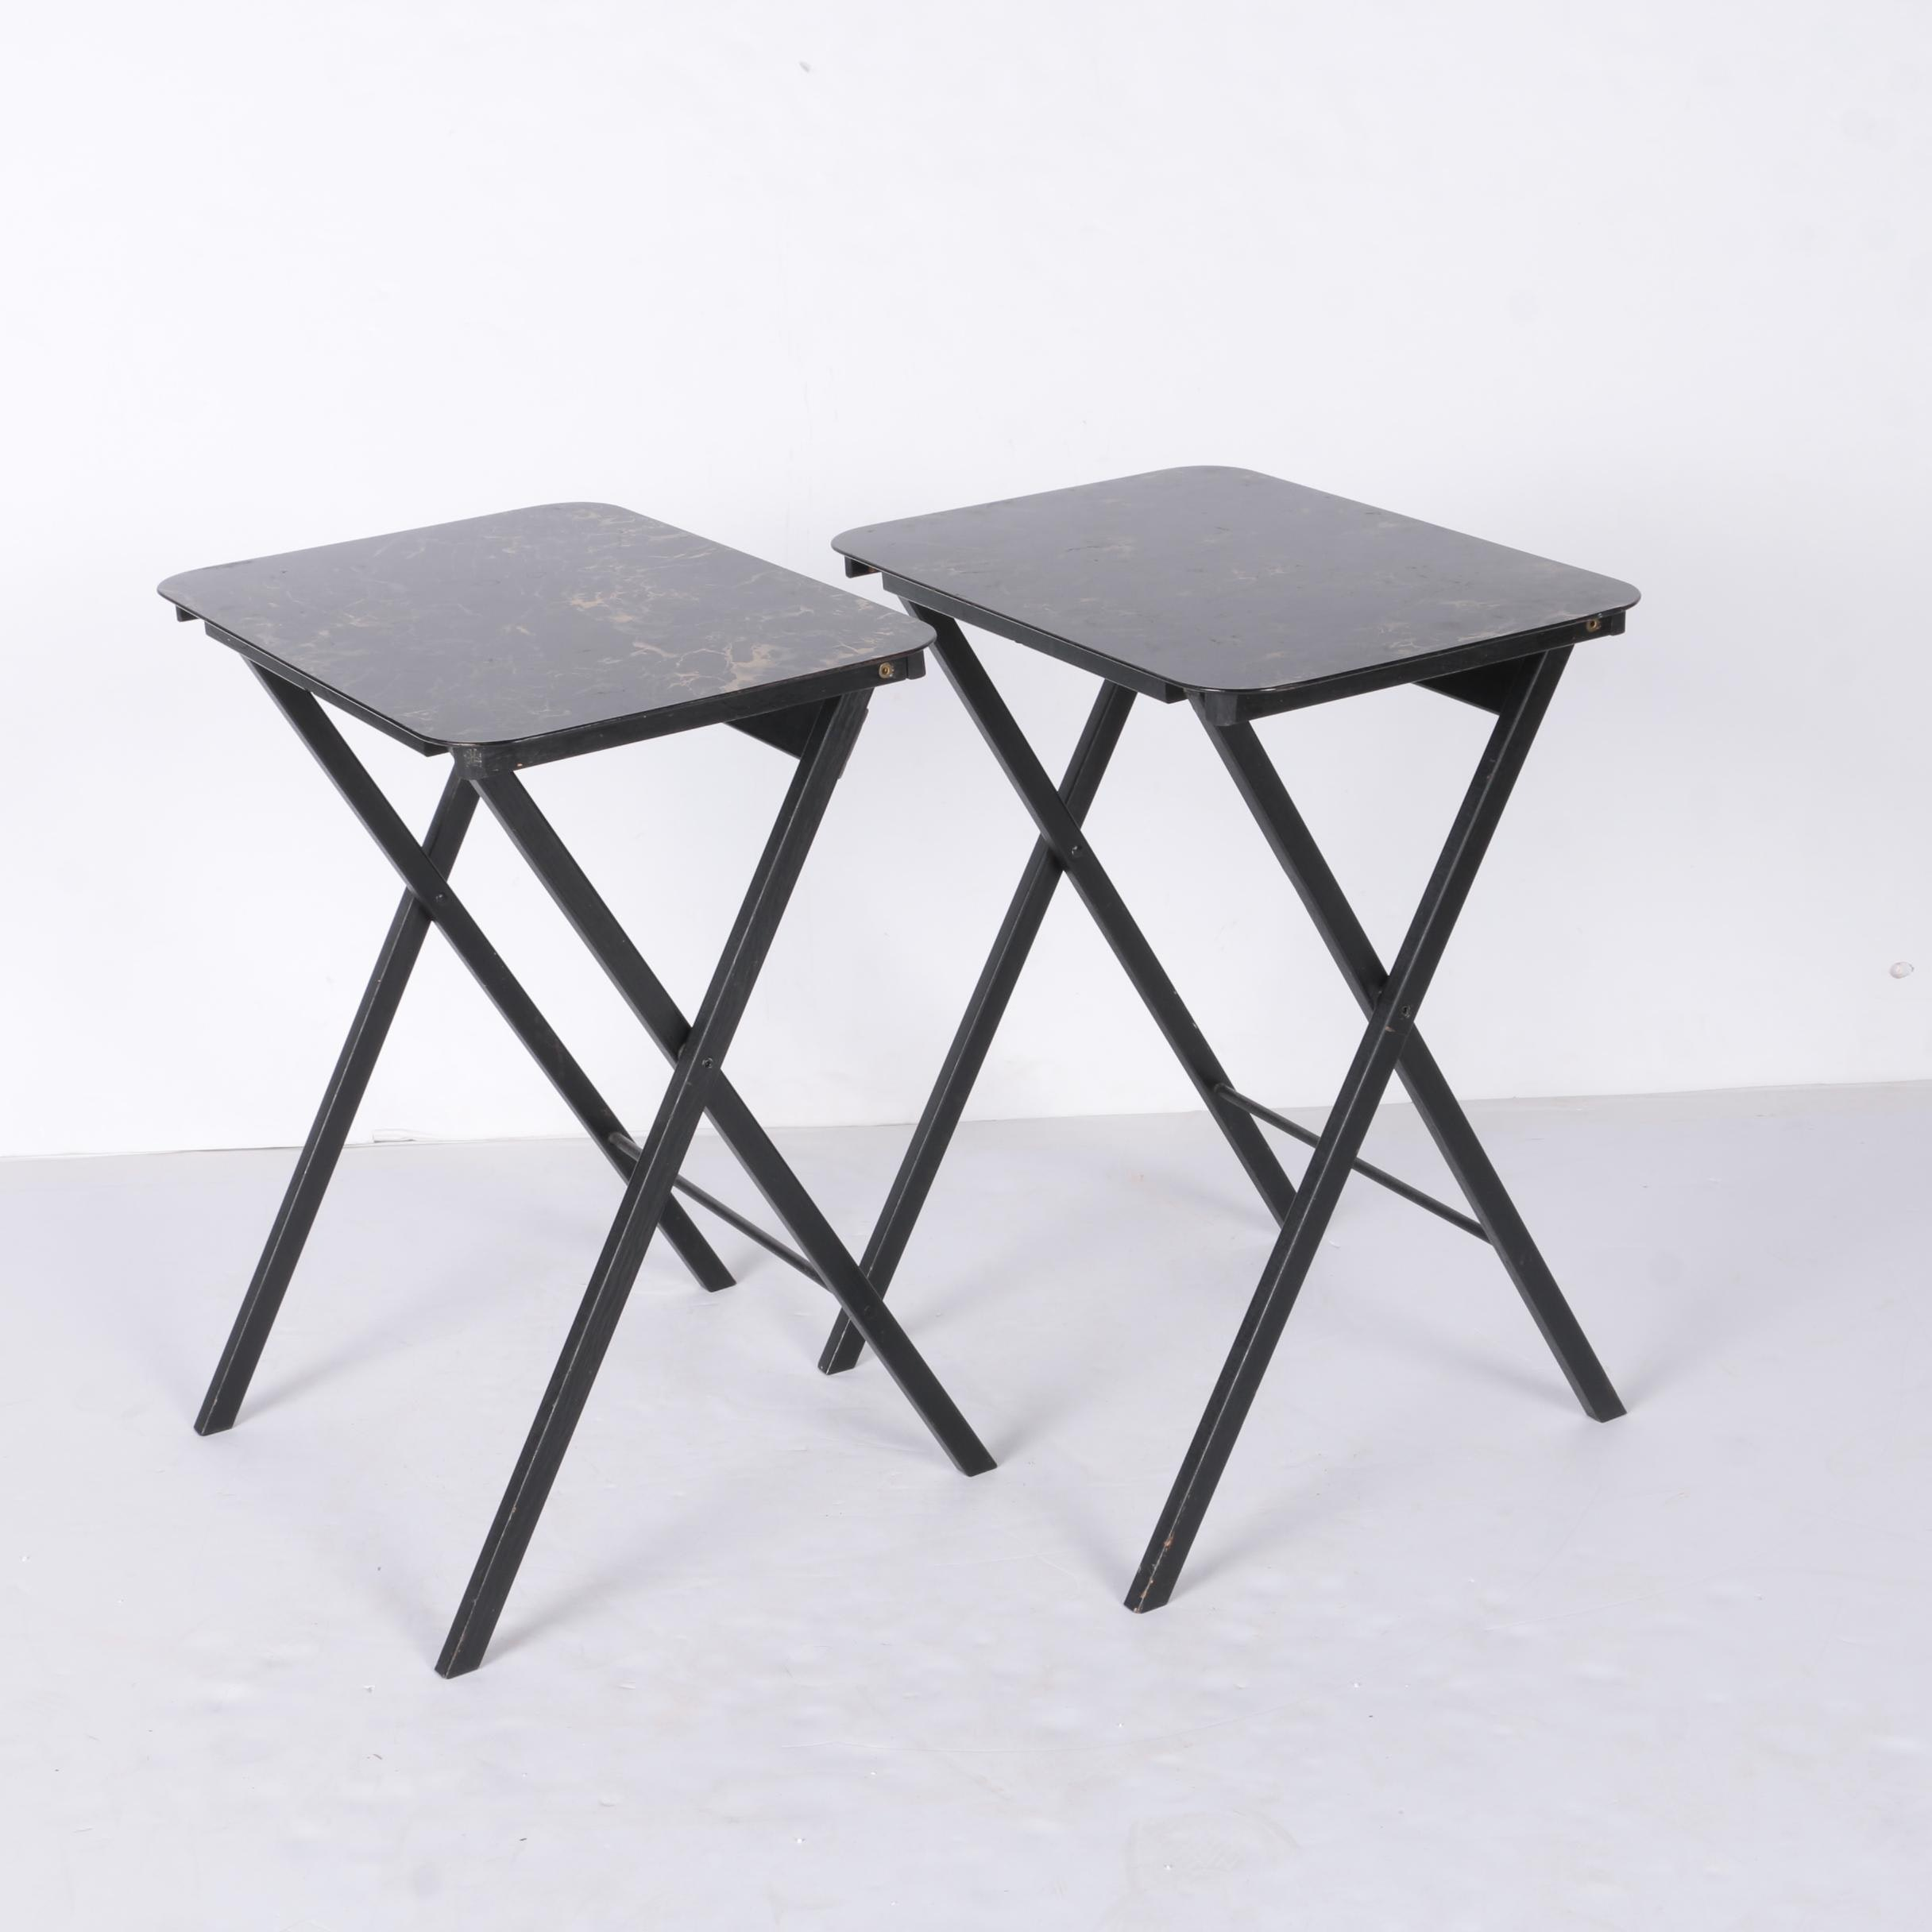 Two Folding Tray Tables